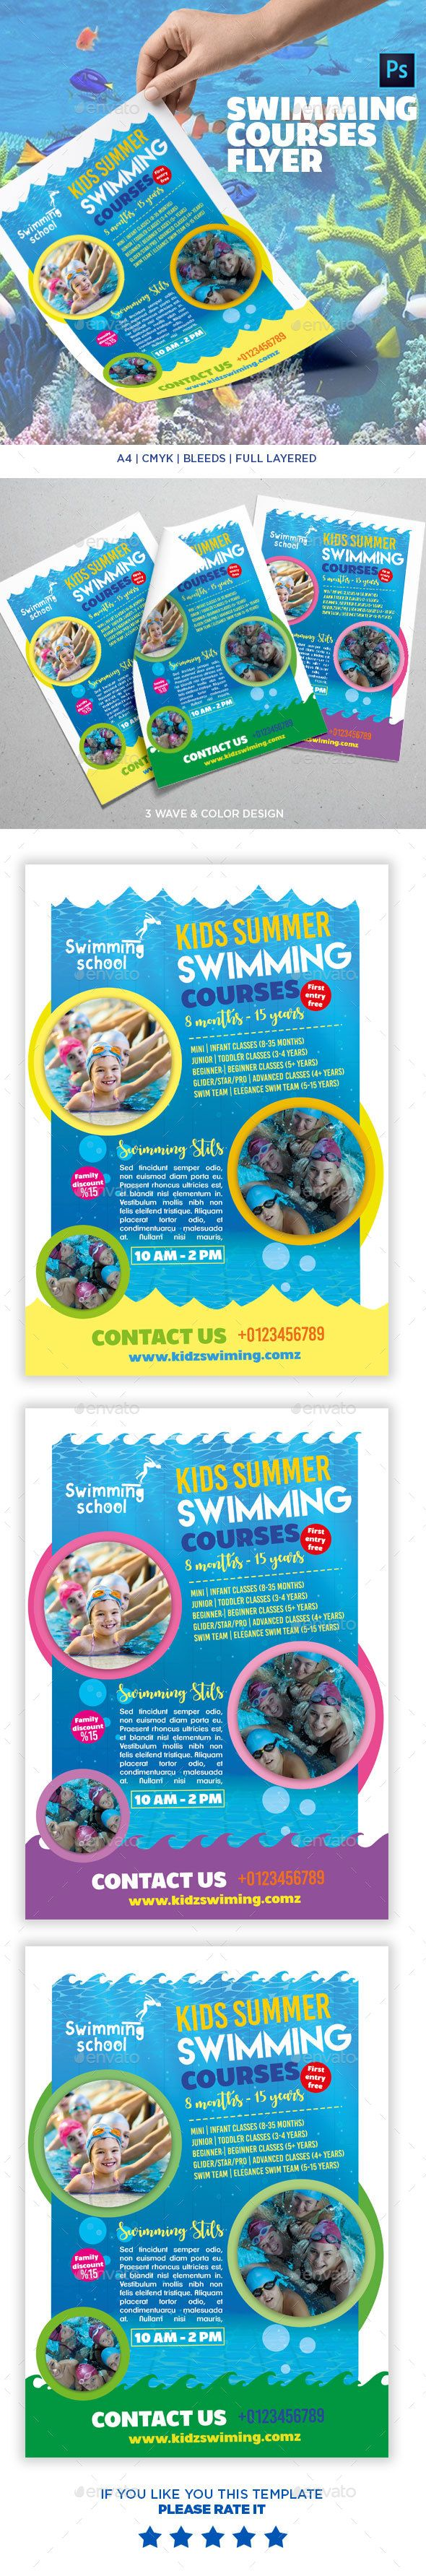 Swimming Course #Flyer Template - Commerce Flyers Download here: https://graphicriver.net/item/swimming-course-flyer-template/20109721?ref=alena994